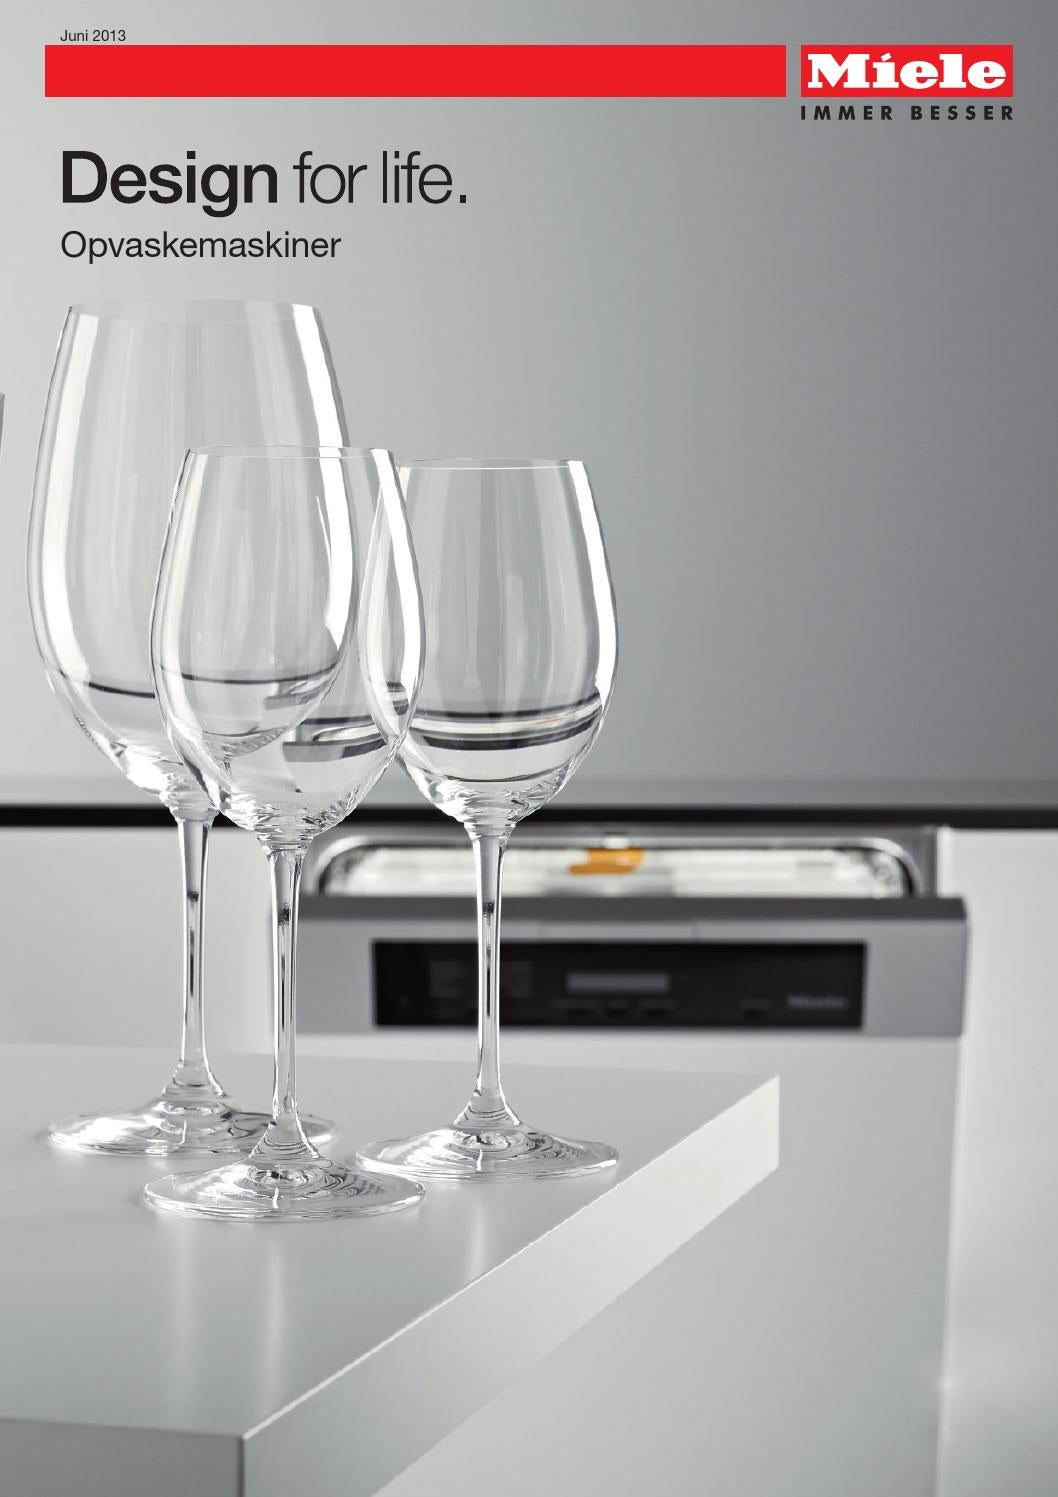 miele katalog opvaskemaskiner dk by miele issuu. Black Bedroom Furniture Sets. Home Design Ideas